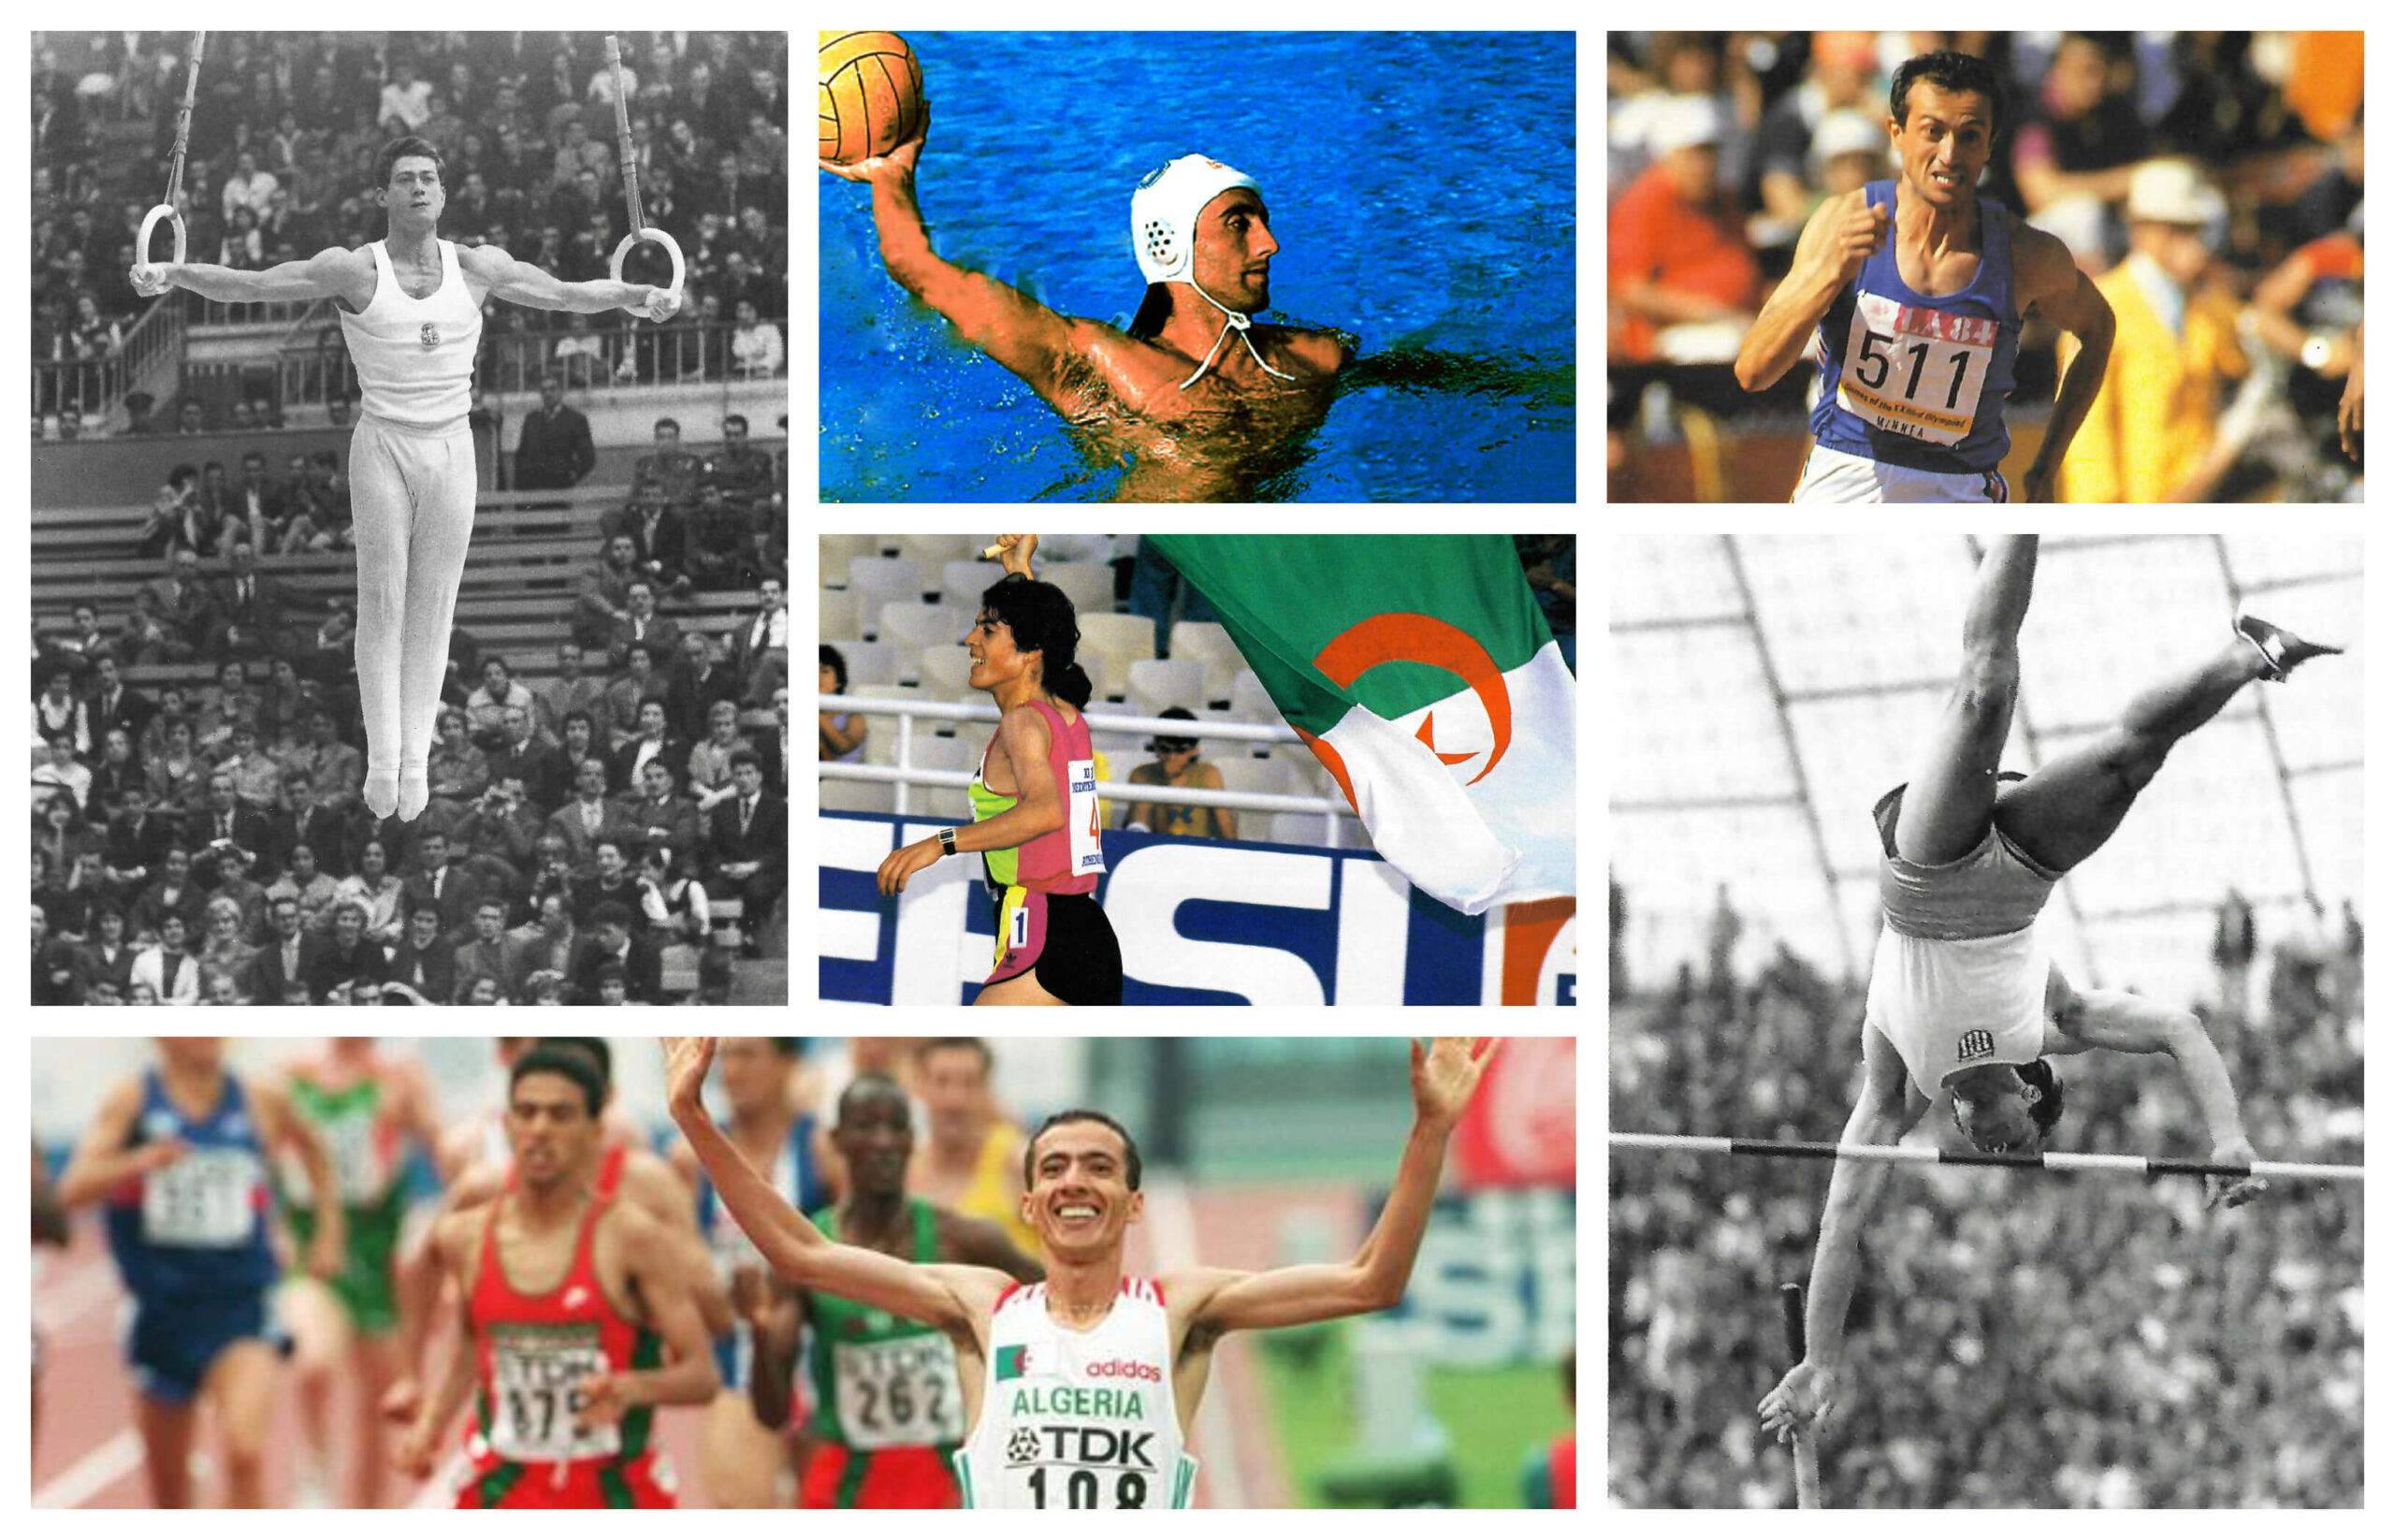 The Mediterranean Games history makers